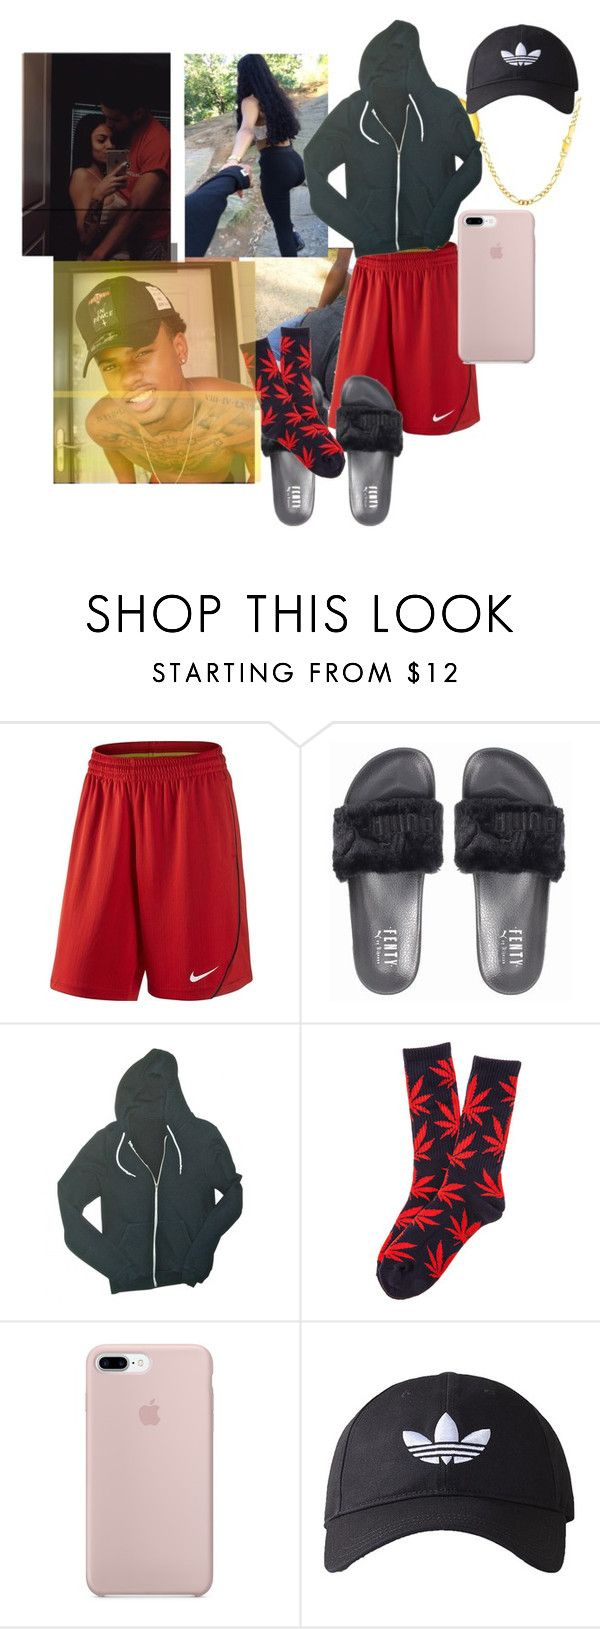 """Nighty-Messy but...."" by p-aradise-anons ❤ liked on Polyvore featuring NIKE, American Apparel, HUF, adidas Originals, men's fashion and menswear"